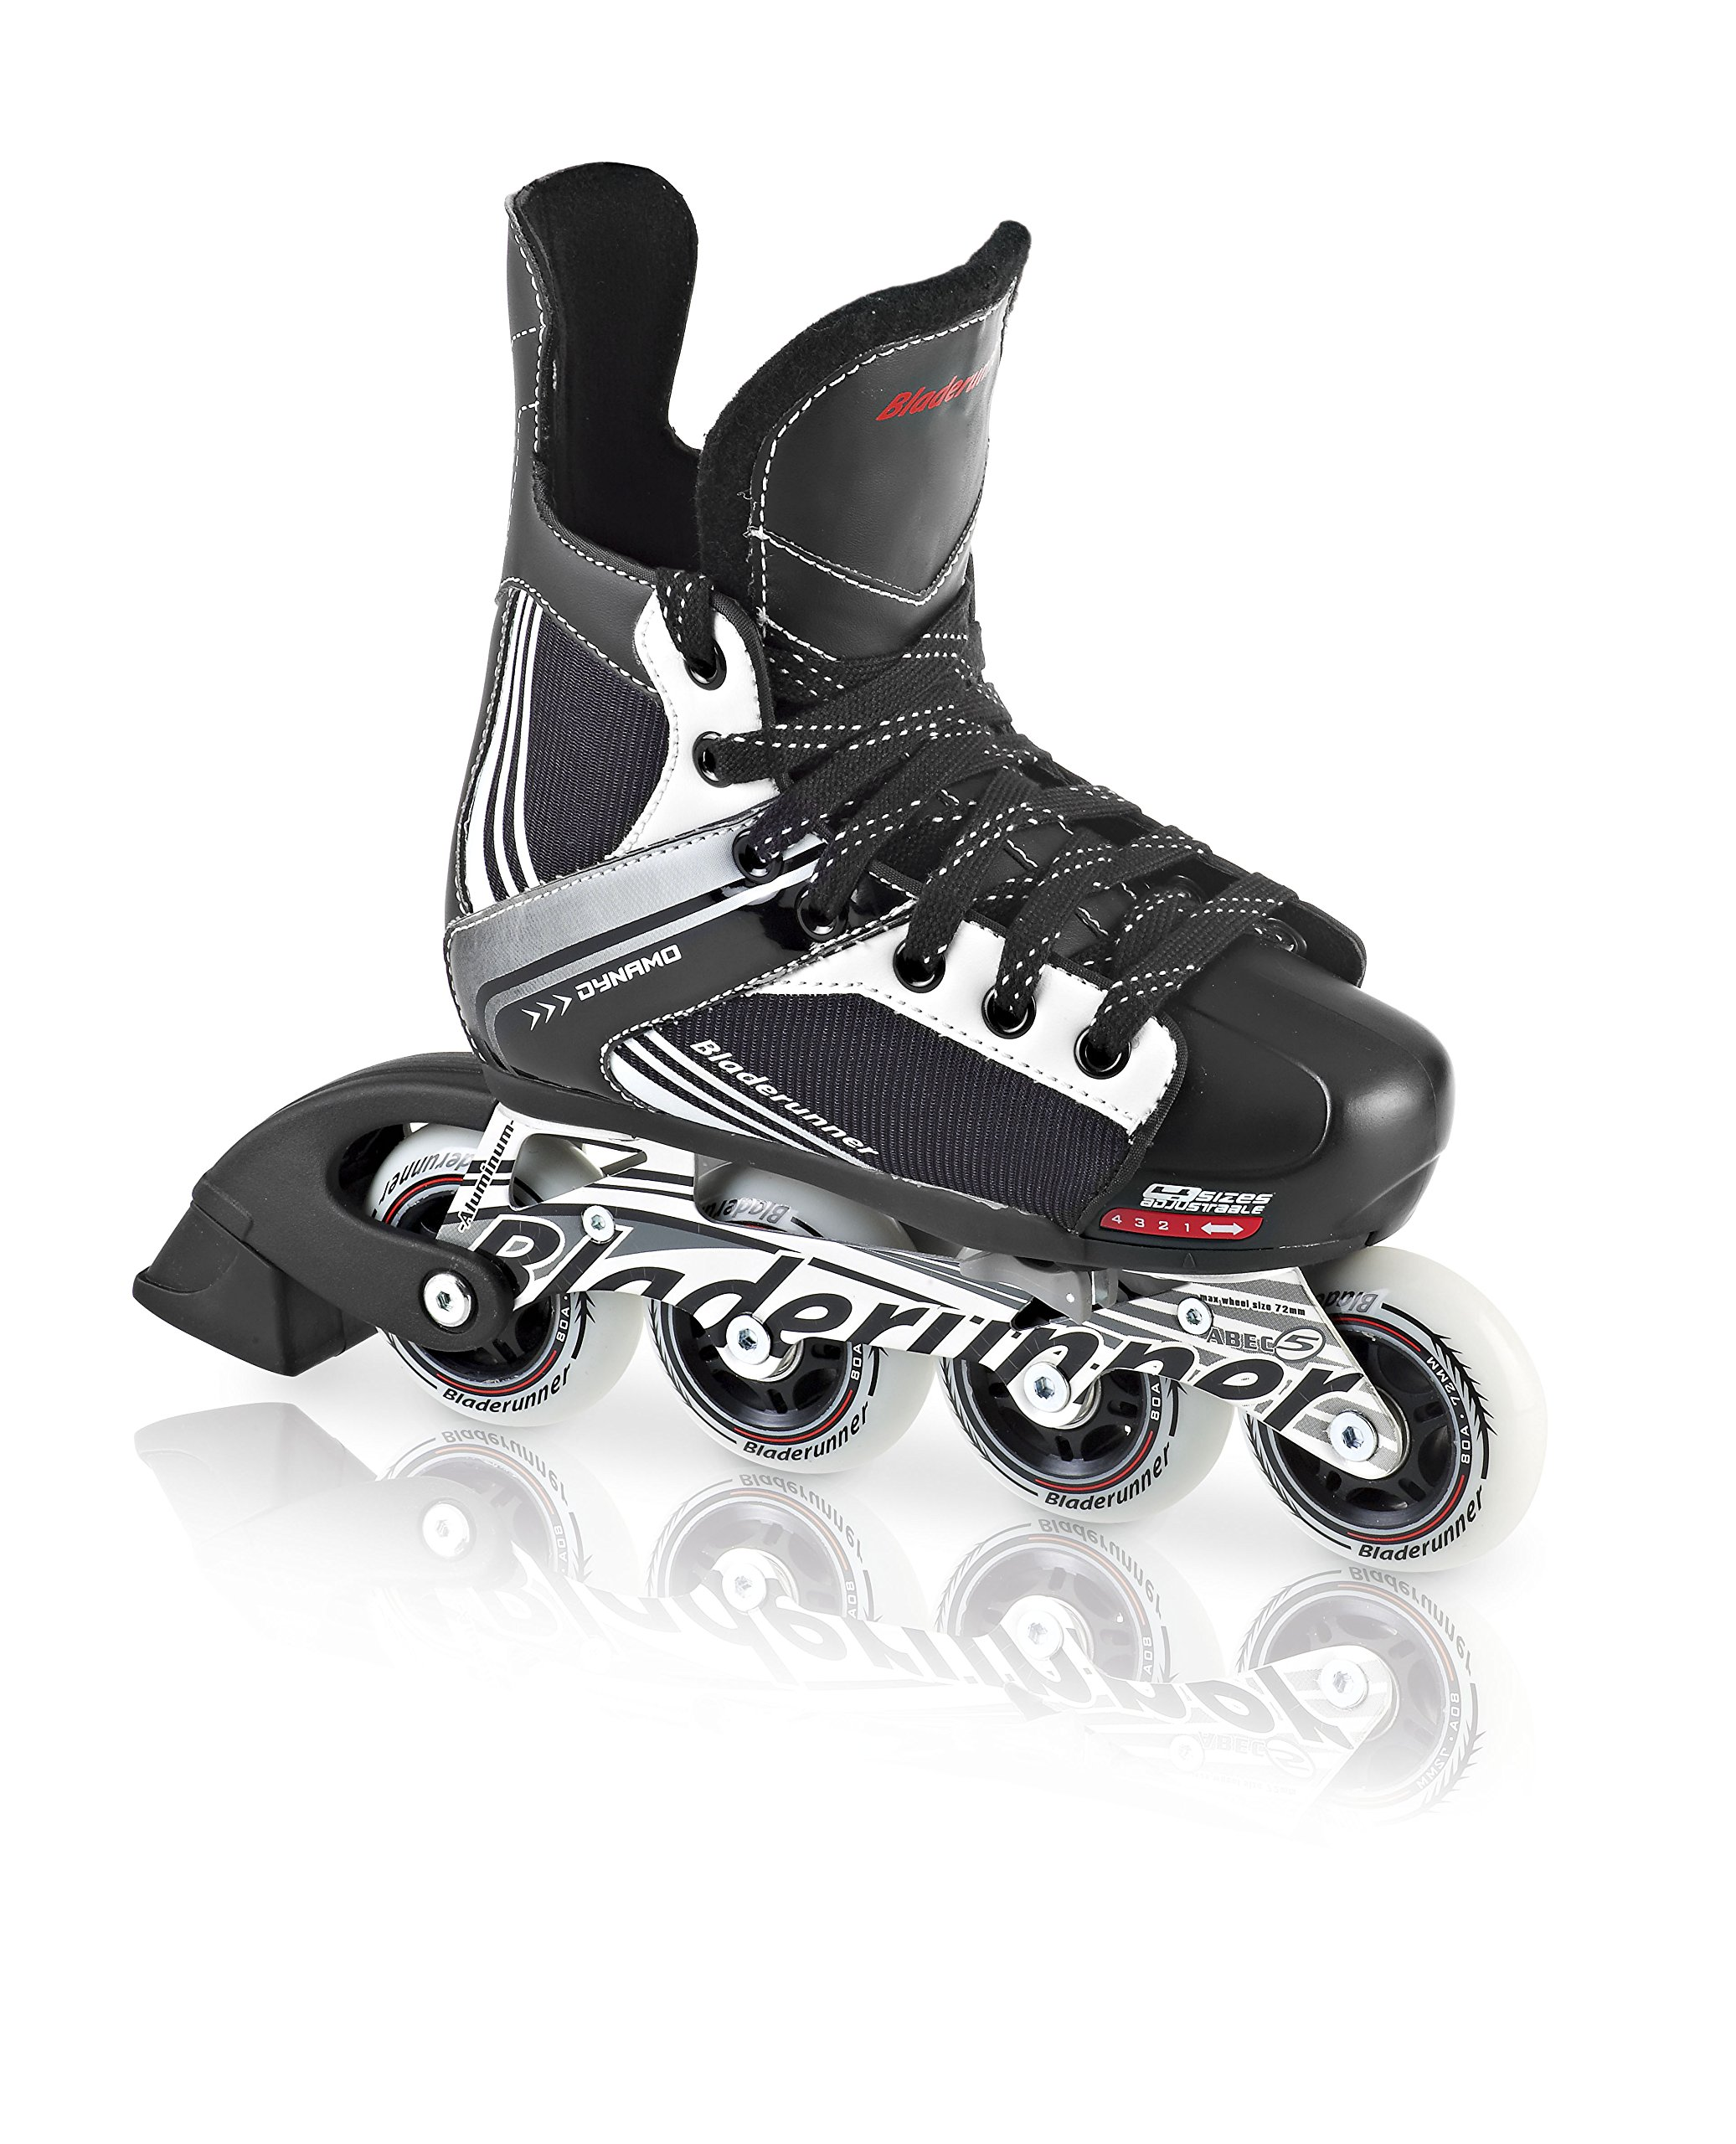 Bladerunner Kids Dynamo Adjustable Hockey Skate with 64mm Wheels, Black/White, Size 11J - 1 by Bladerunner